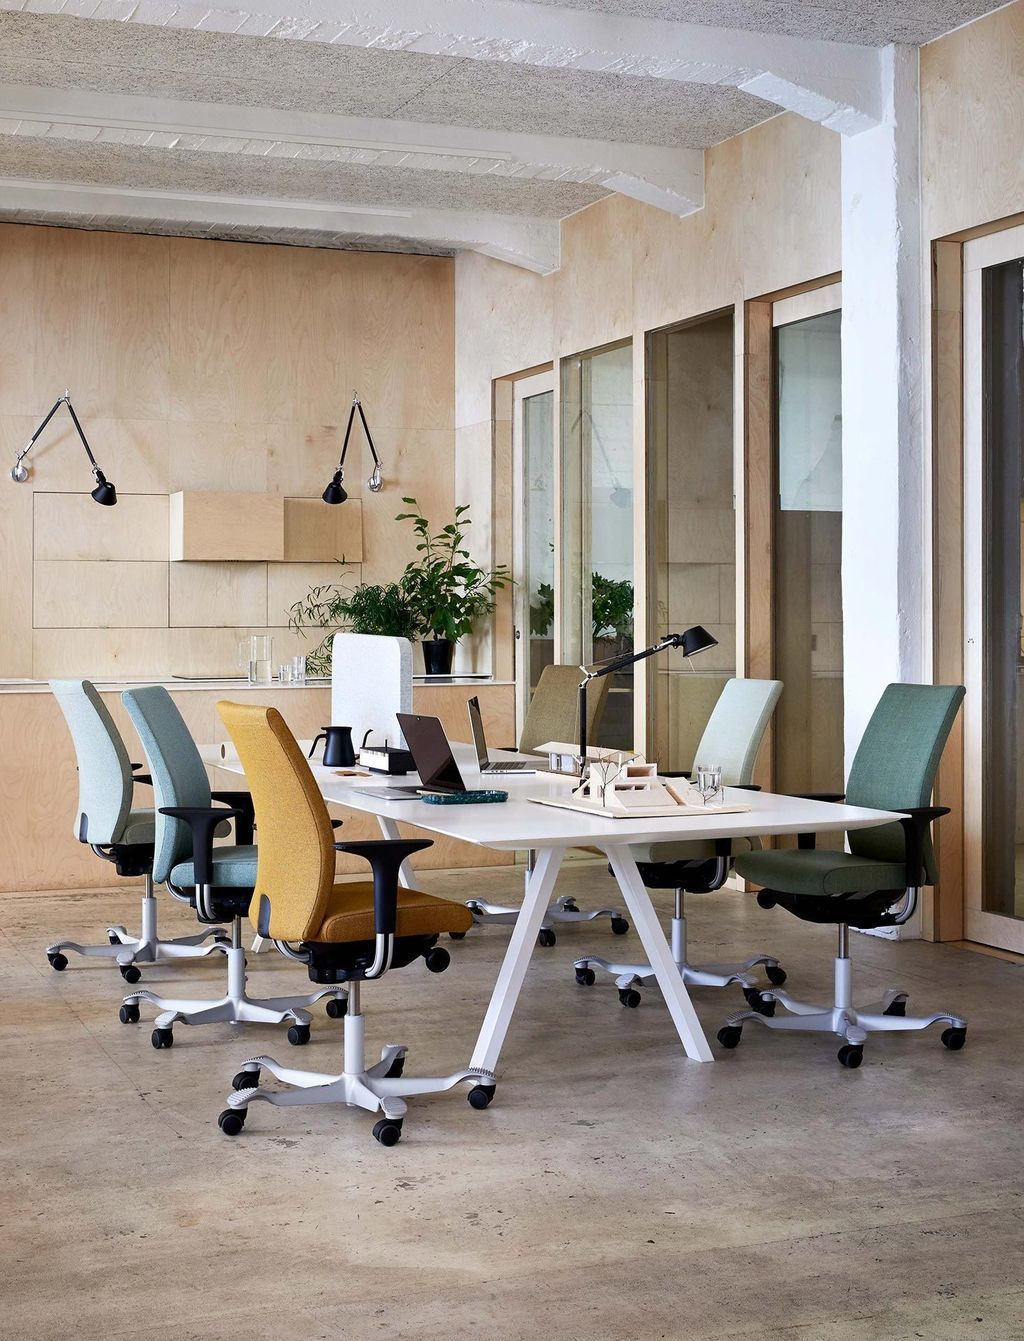 36 Awesome Scandinavian Home Office Design Ideas You Should Copy In 2020 Modern Office Space Office Space Design Modern Office Space Design